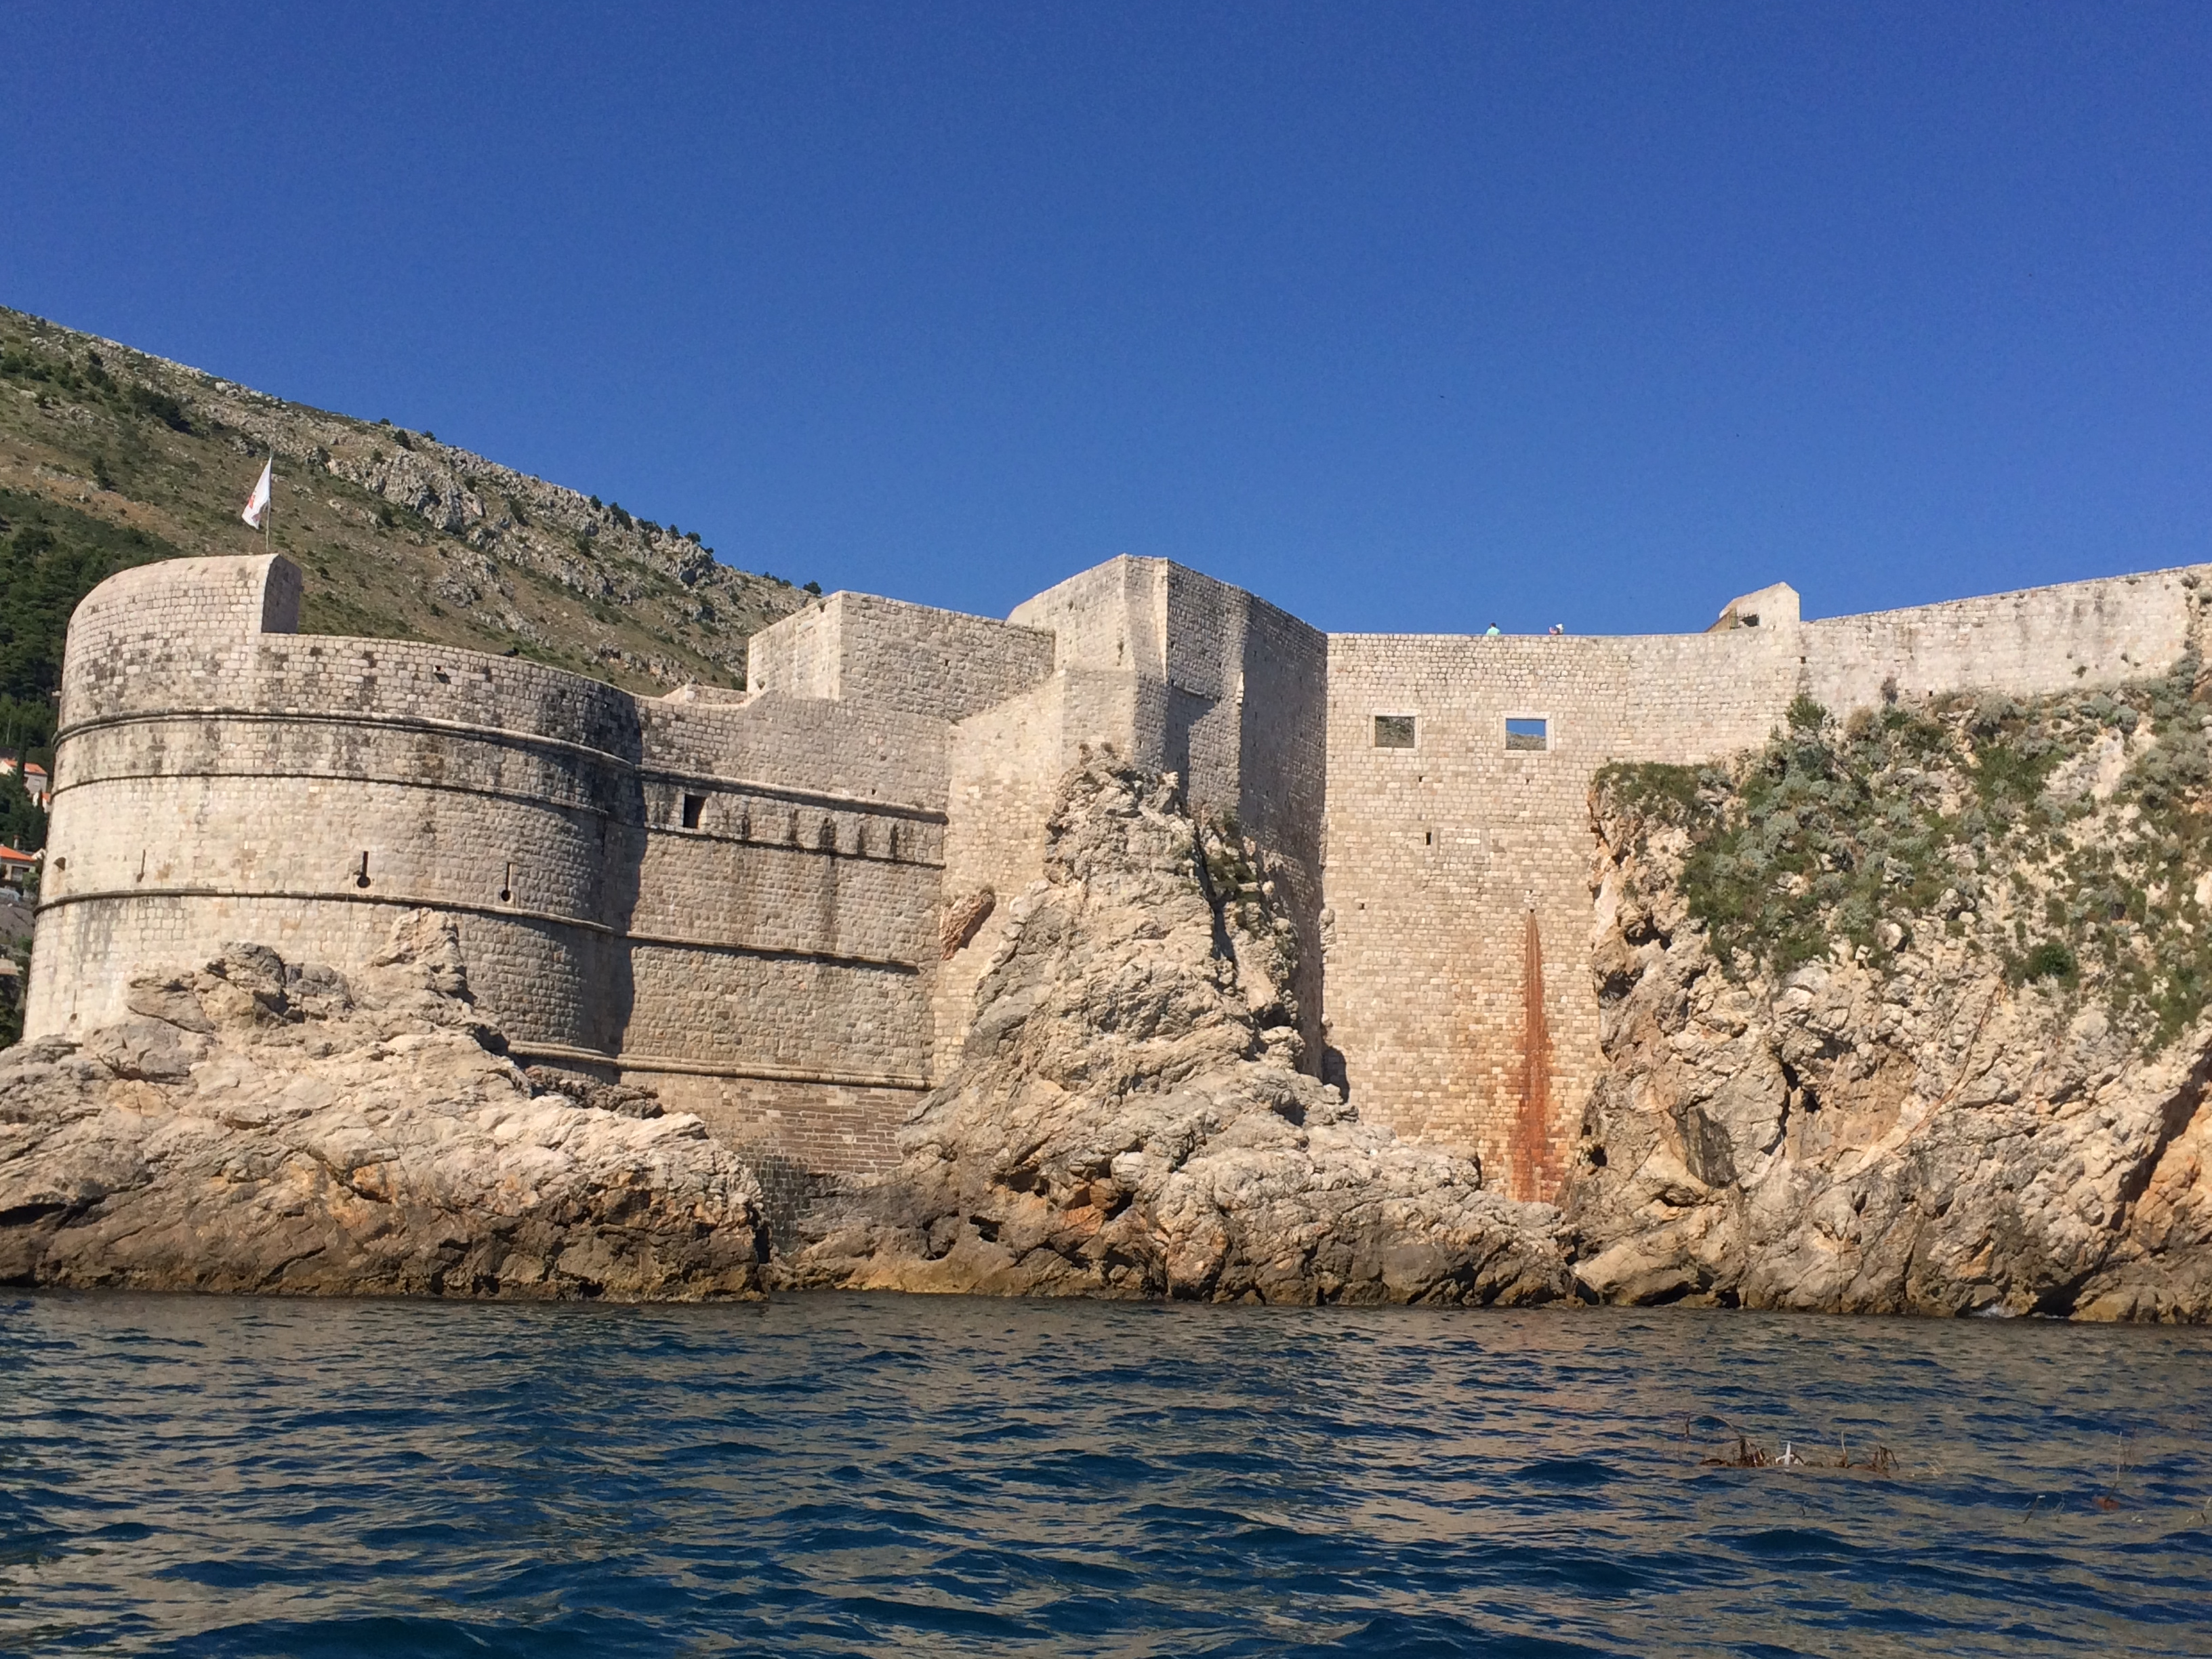 Mighty walls of Dubrovnik from a canoe